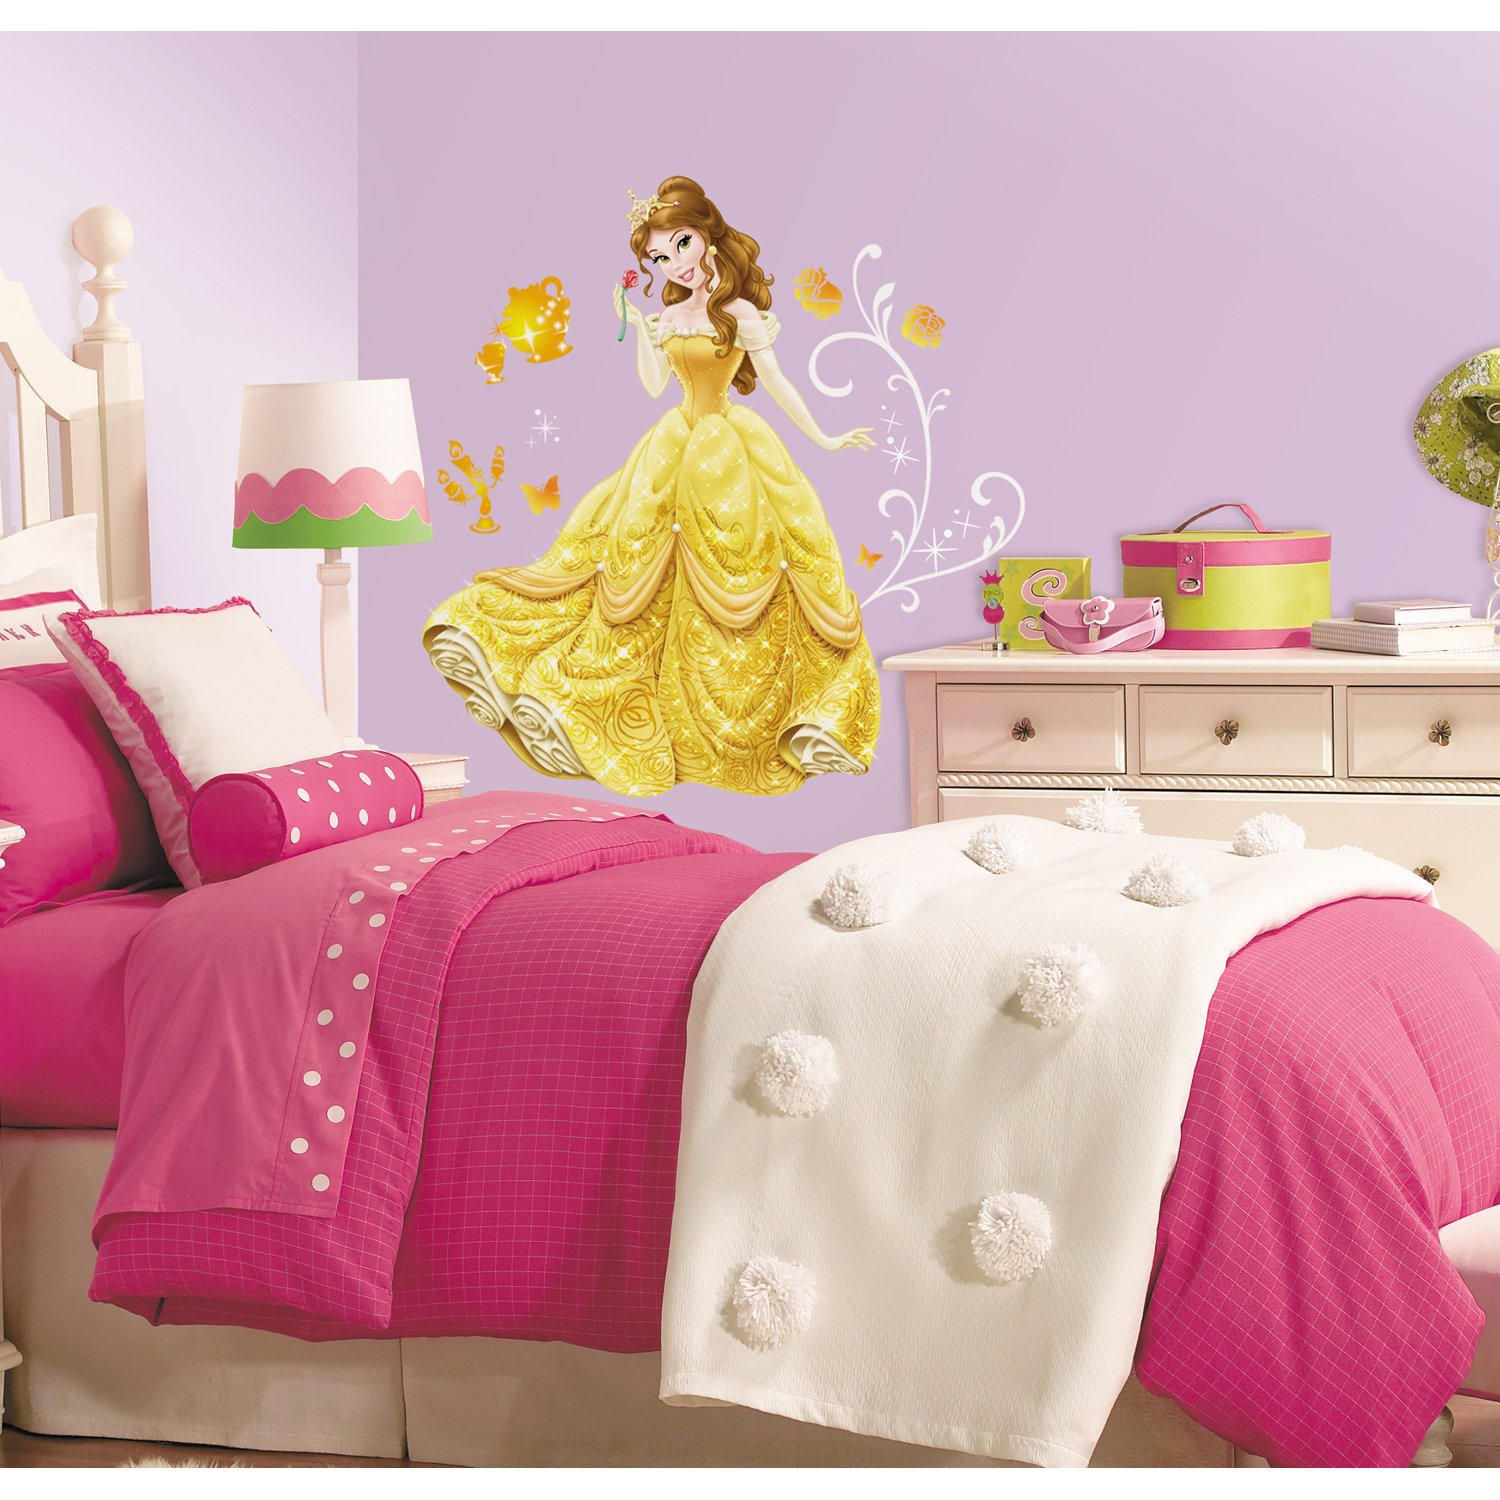 amazoncom roommates rmkgm disney princessbell peel and  - amazoncom roommates rmkgm disney princessbell peel and stick giantwall decals home improvement